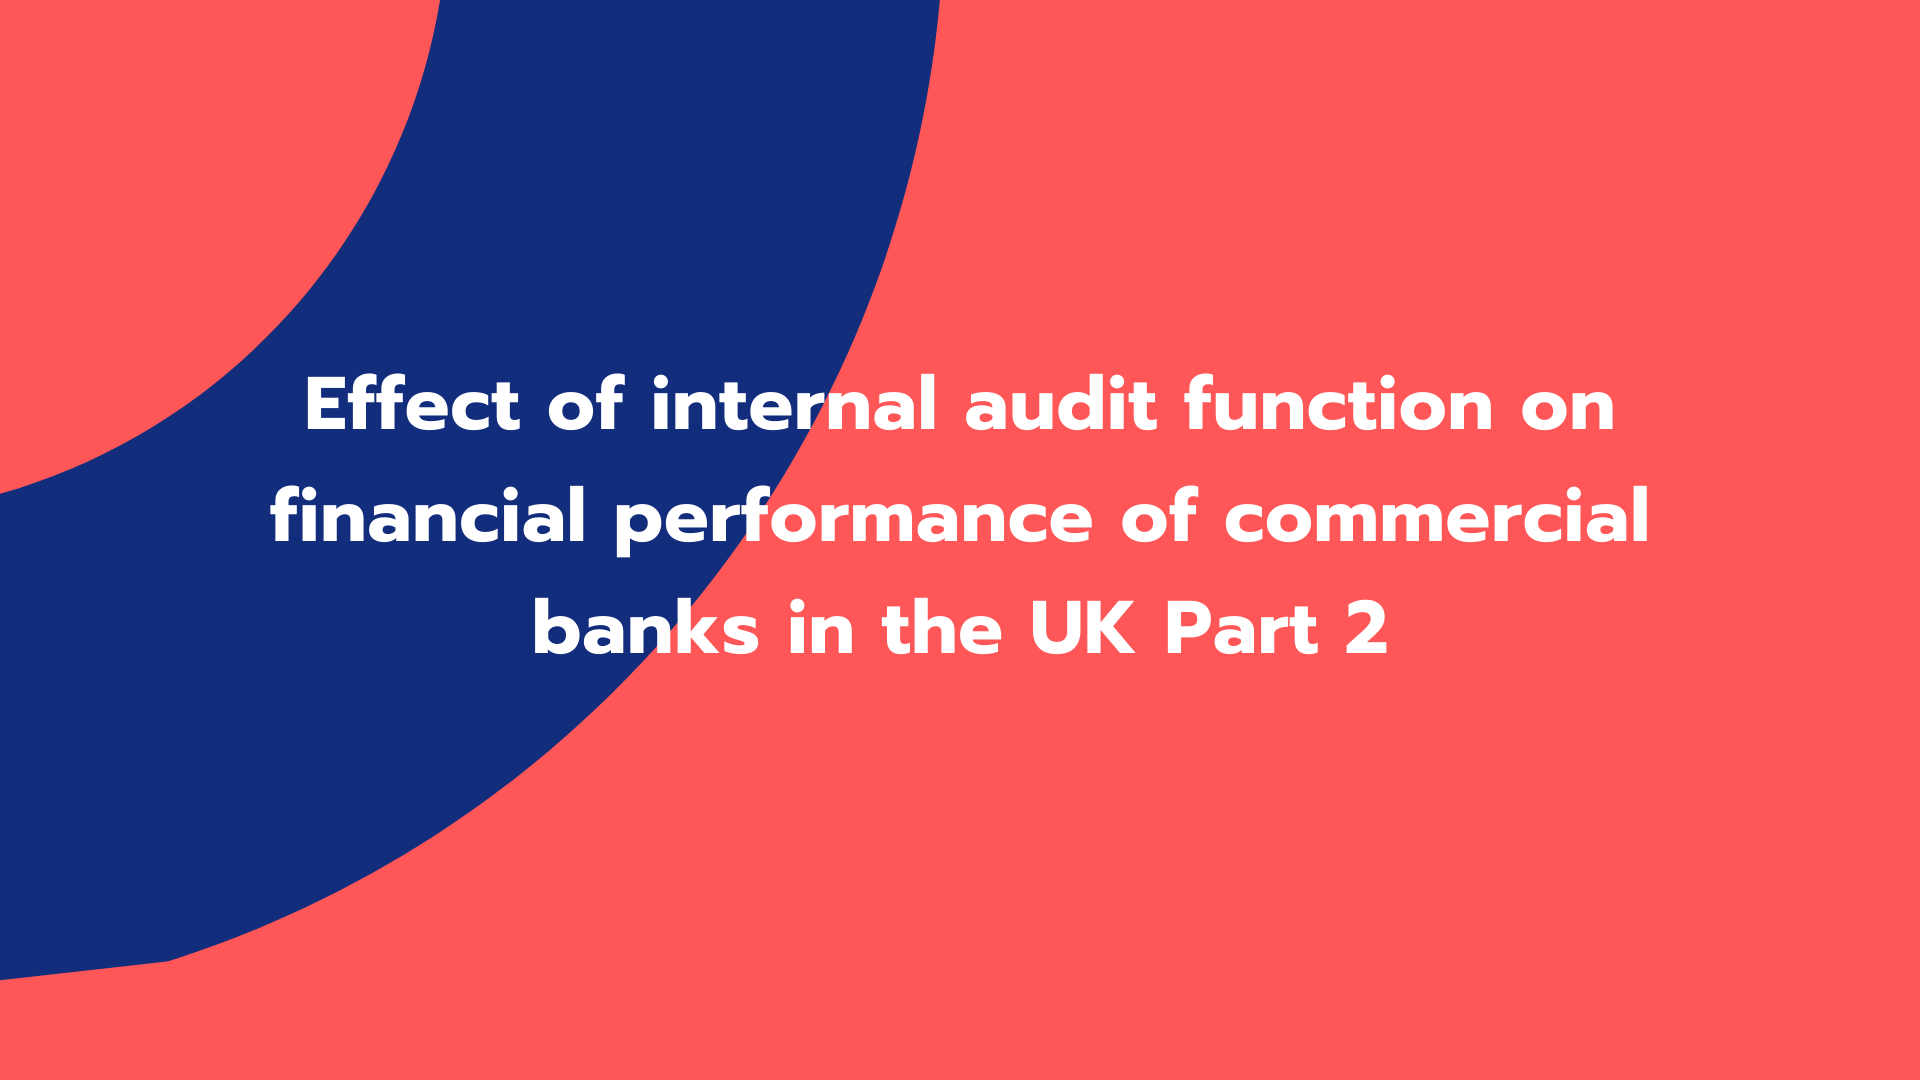 Effect of internal audit function on financial performance of commercial banks in the UK Part 2